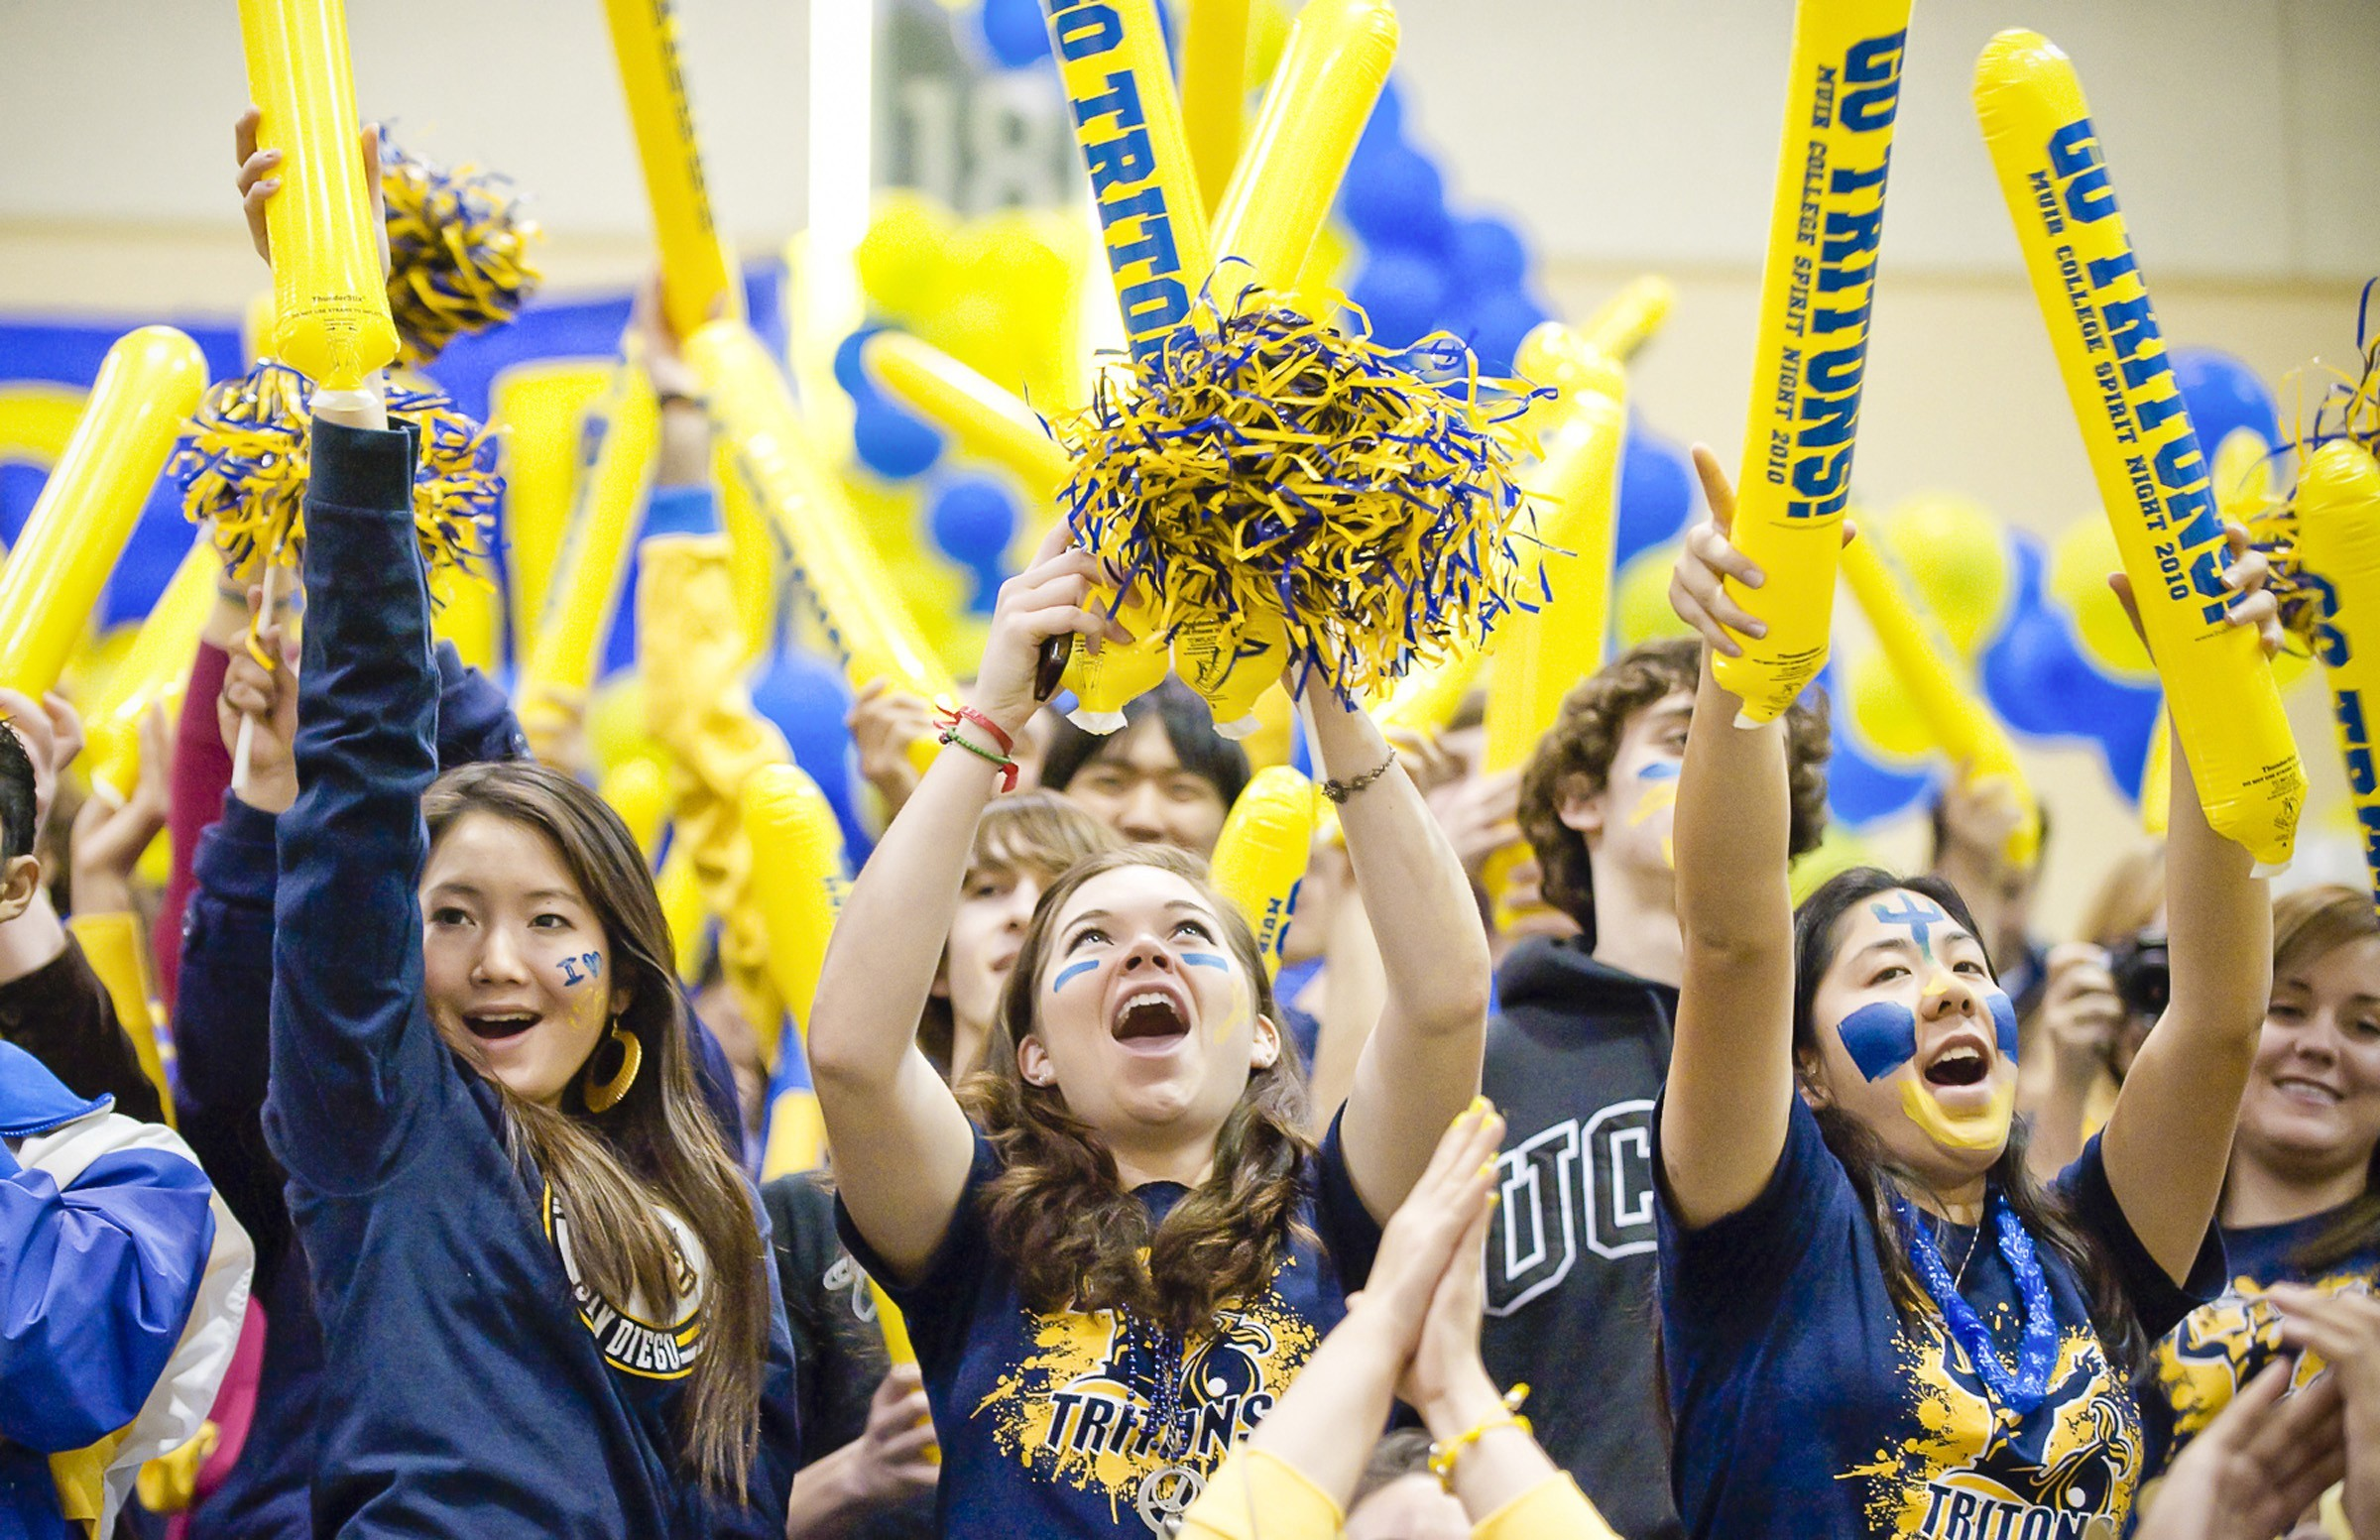 UC San Diego students celebrate Spirit Night, photo by Eric Jepsen